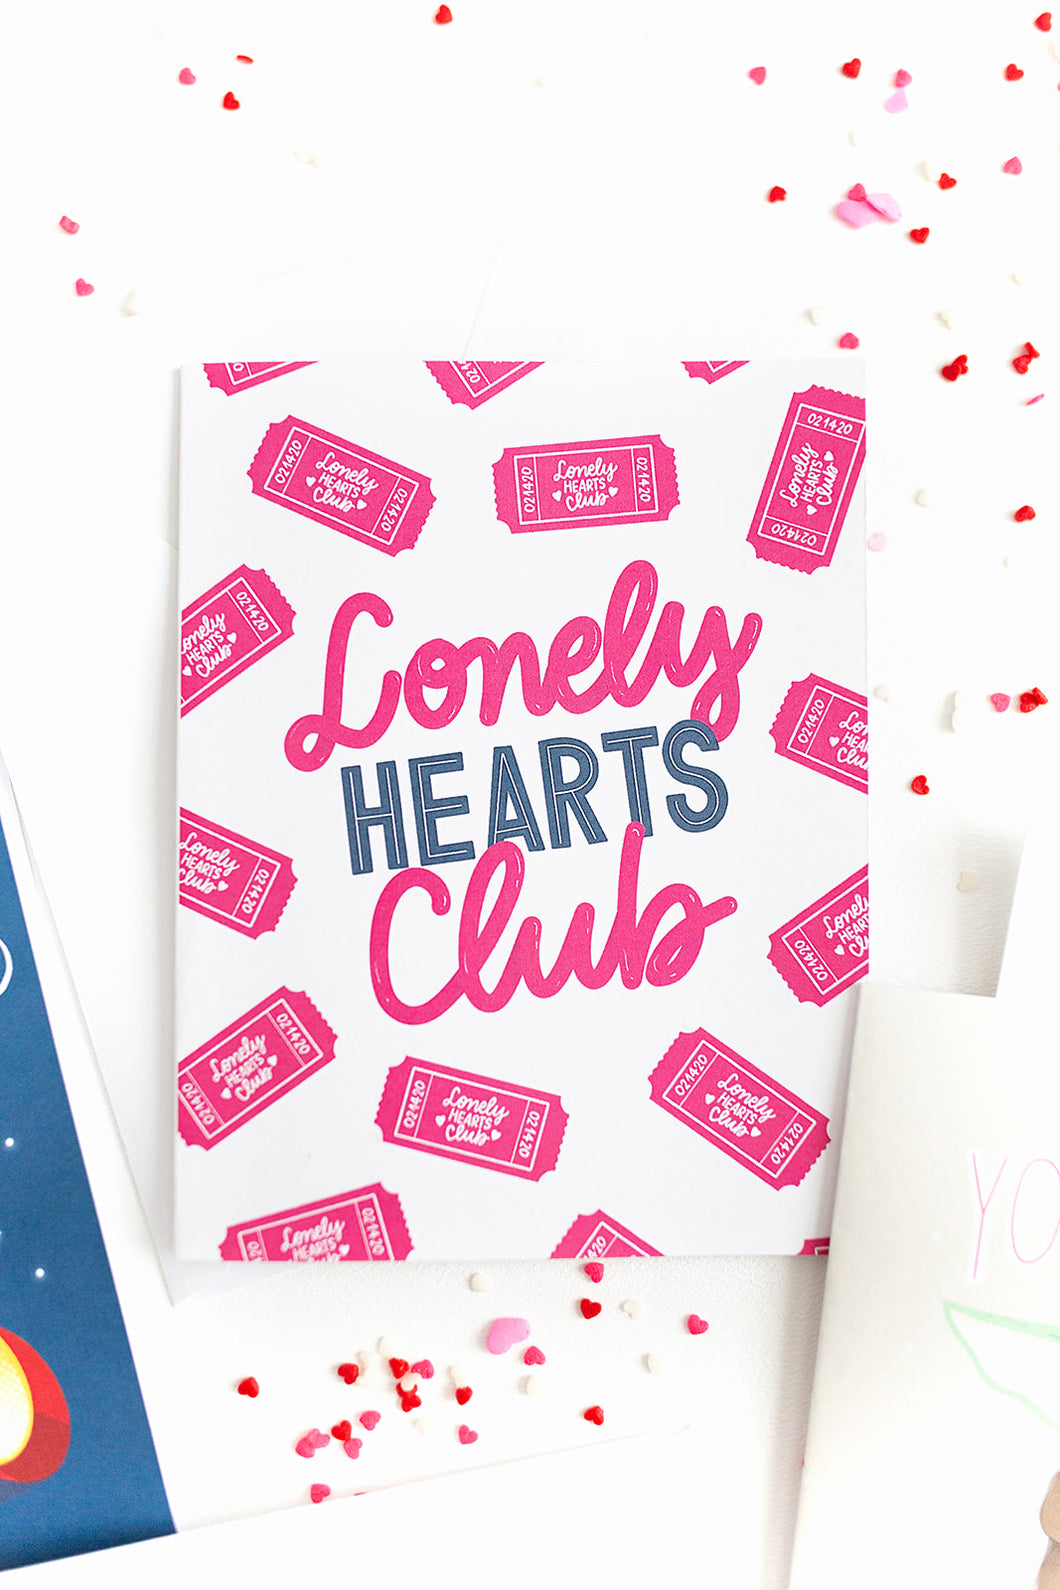 Lonely Hearts Club- Valentine's Day Card